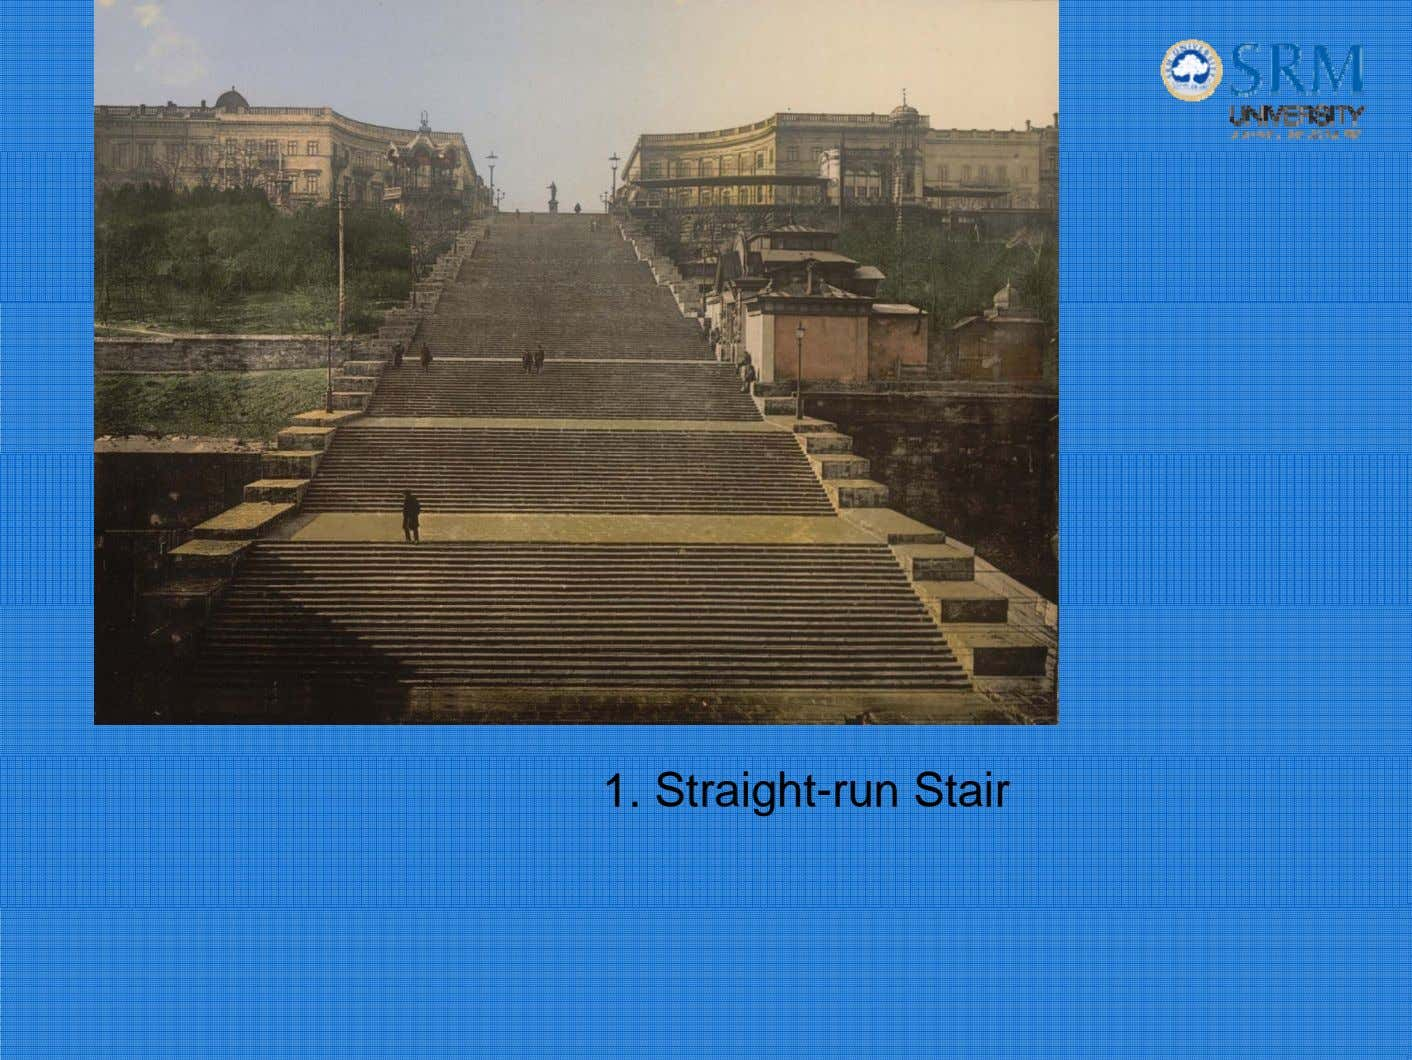 1. Straight-run Stair